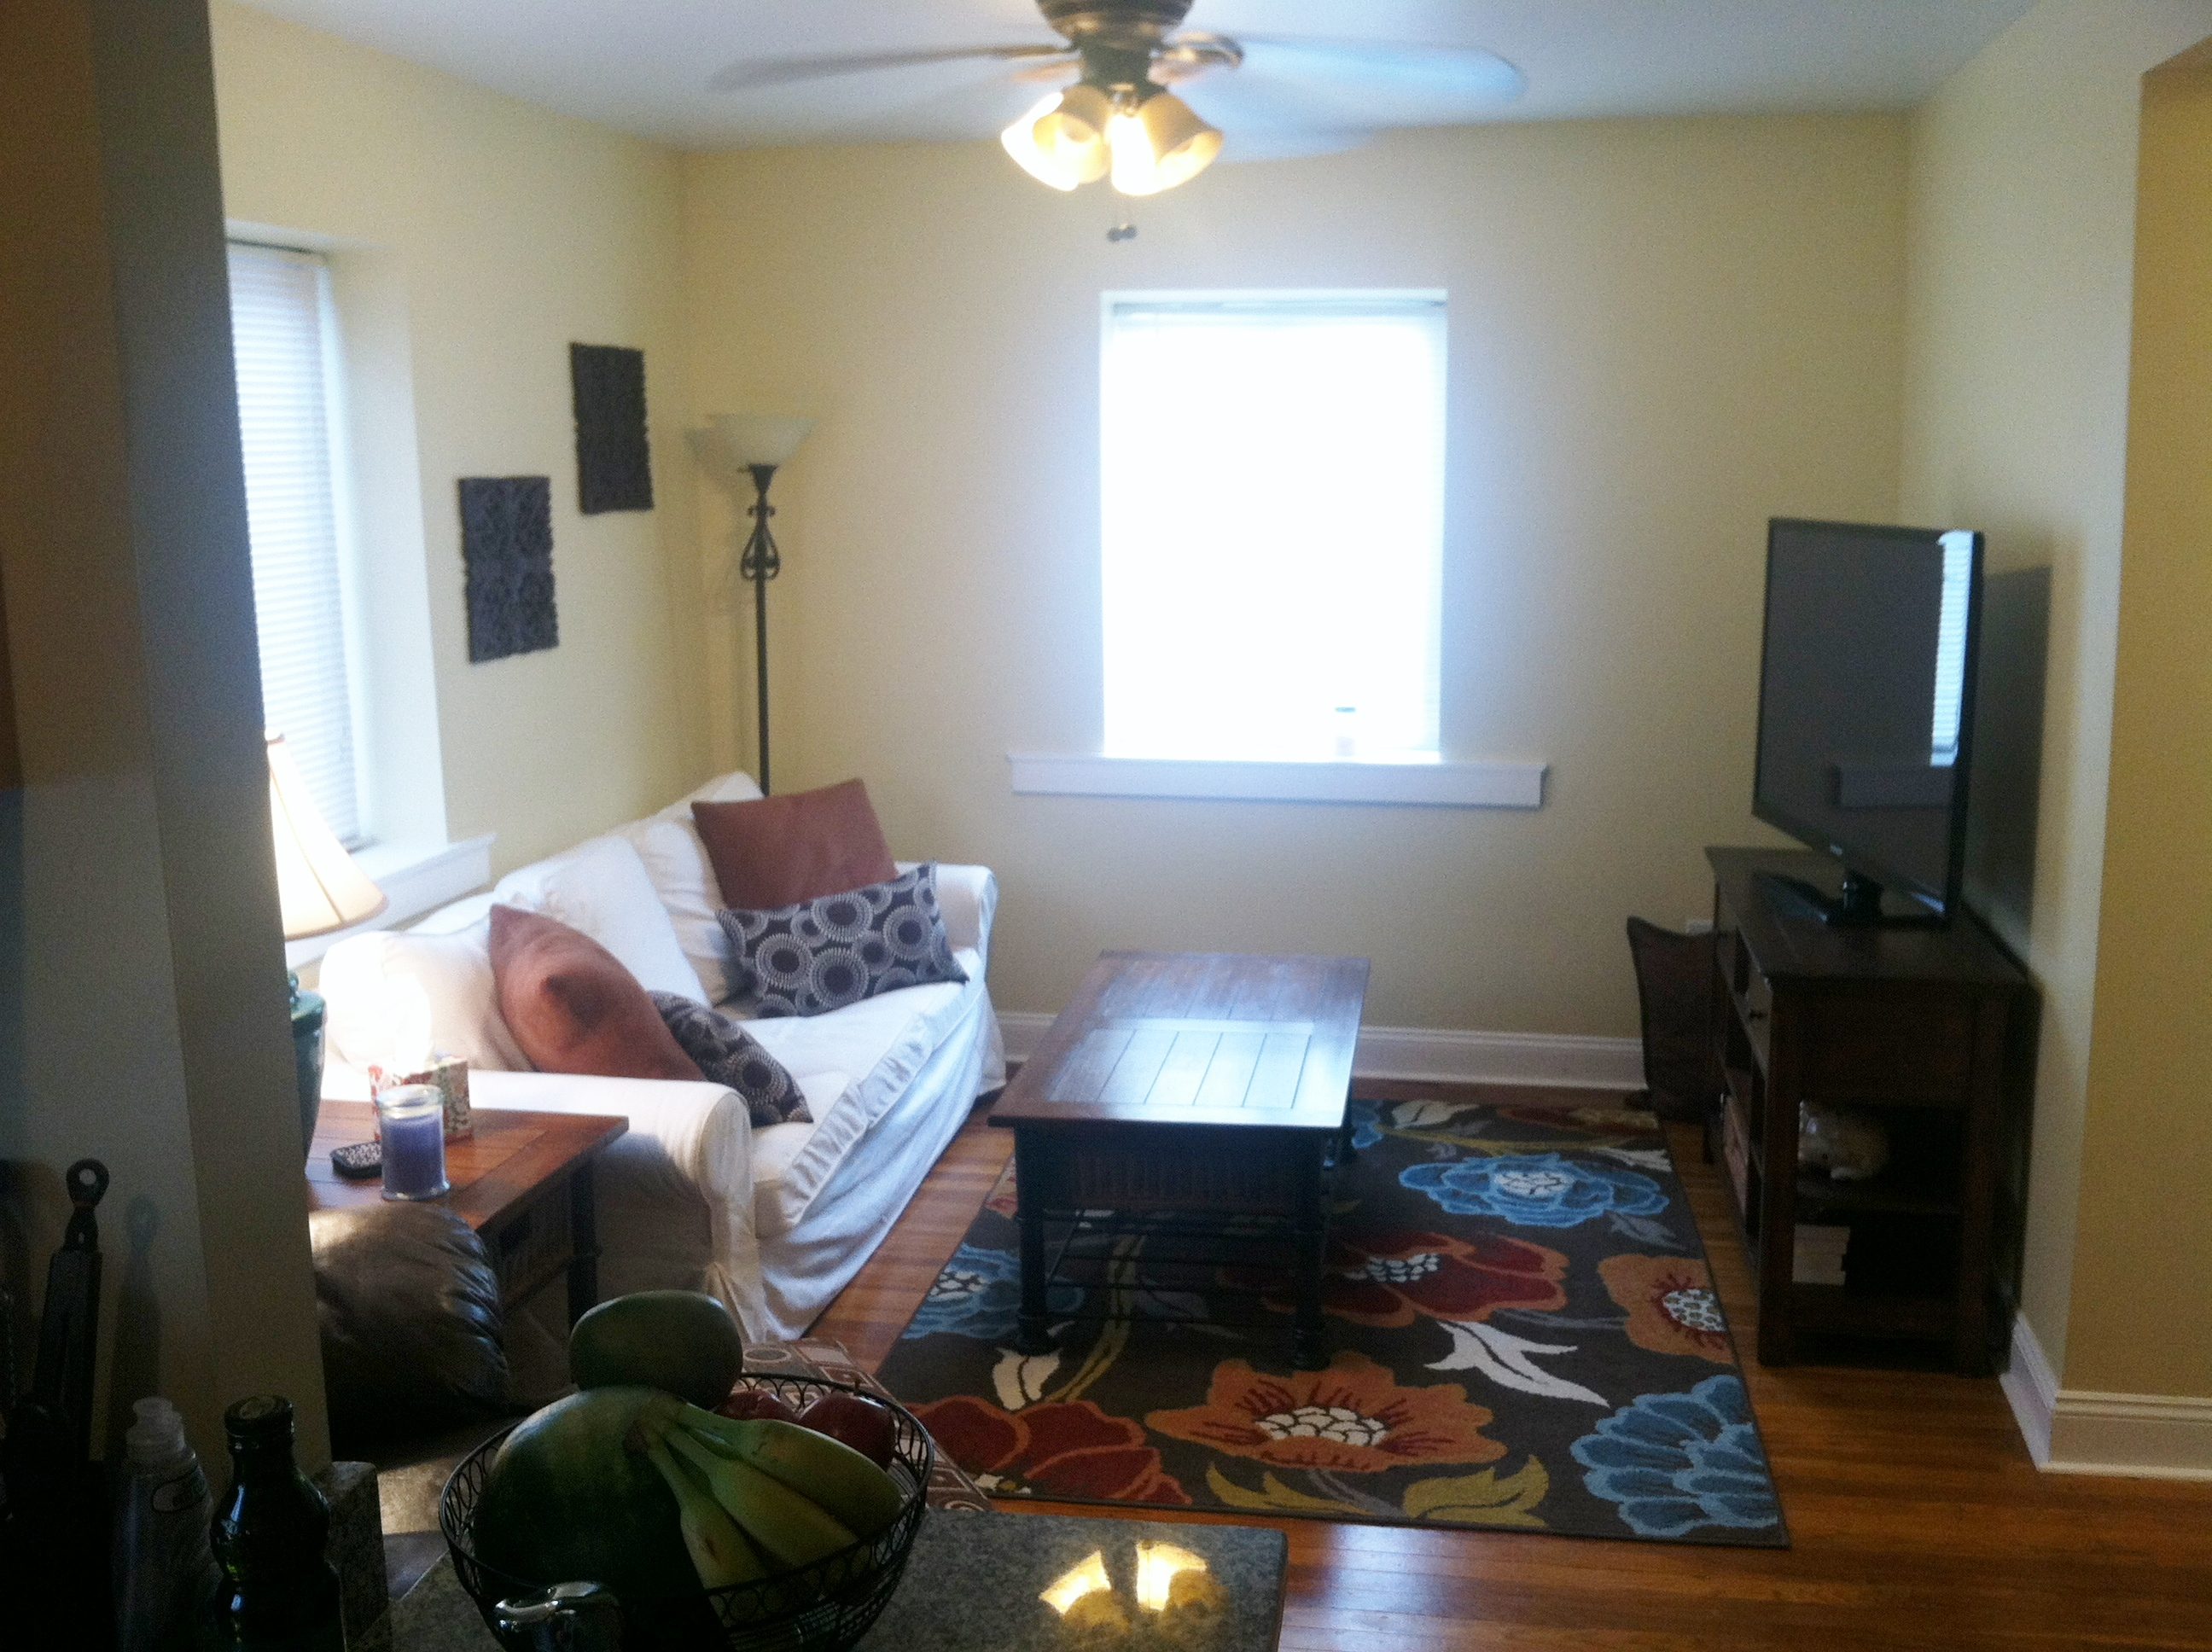 2br 1 0ba In 1462 Dormont Avenue Pittsburgh Pa Apartments For Rent Edigs